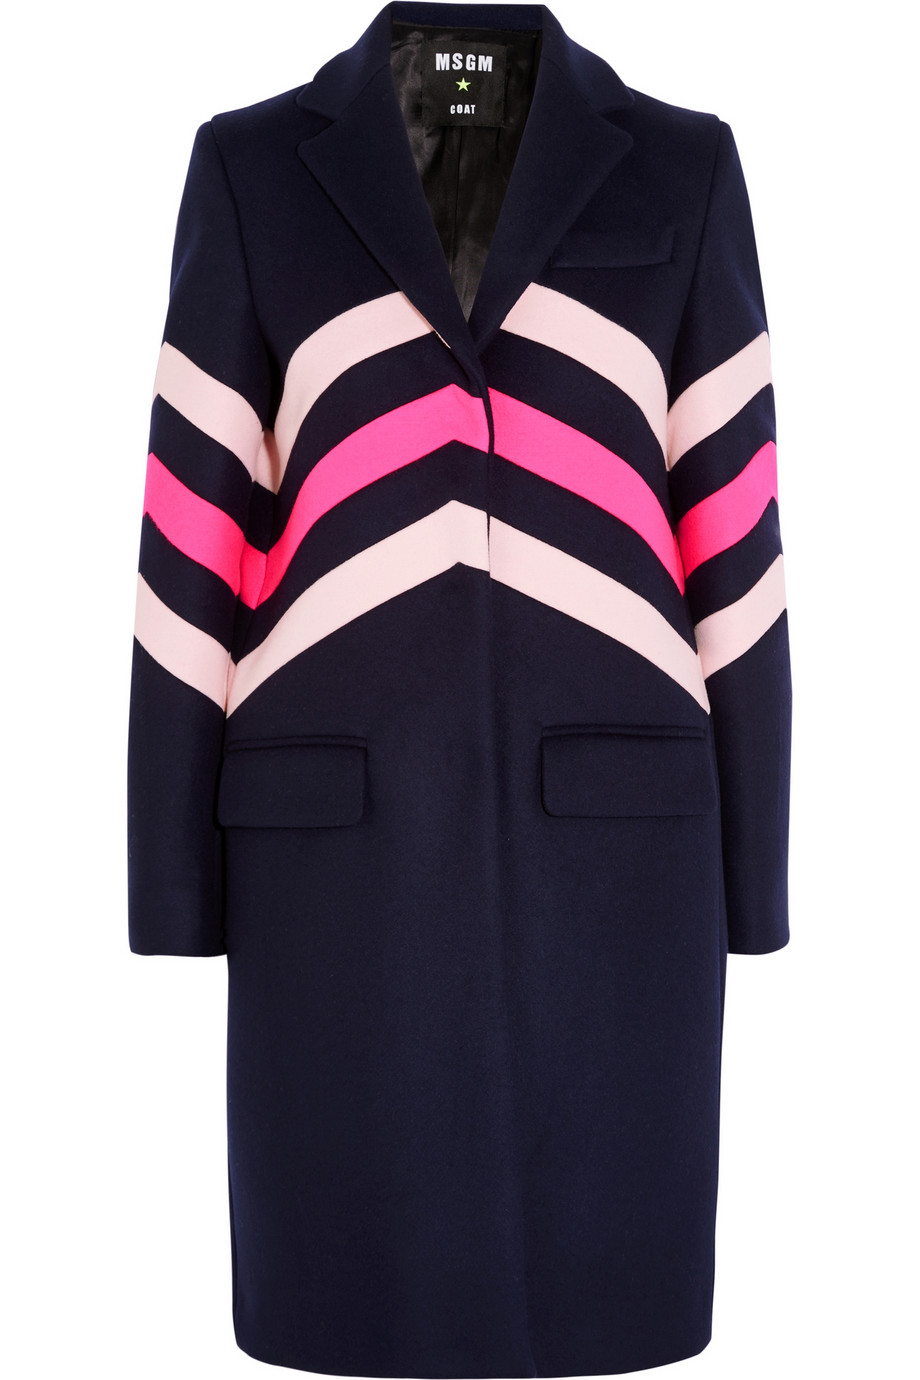 MSGM  jacket - was $820, now $492